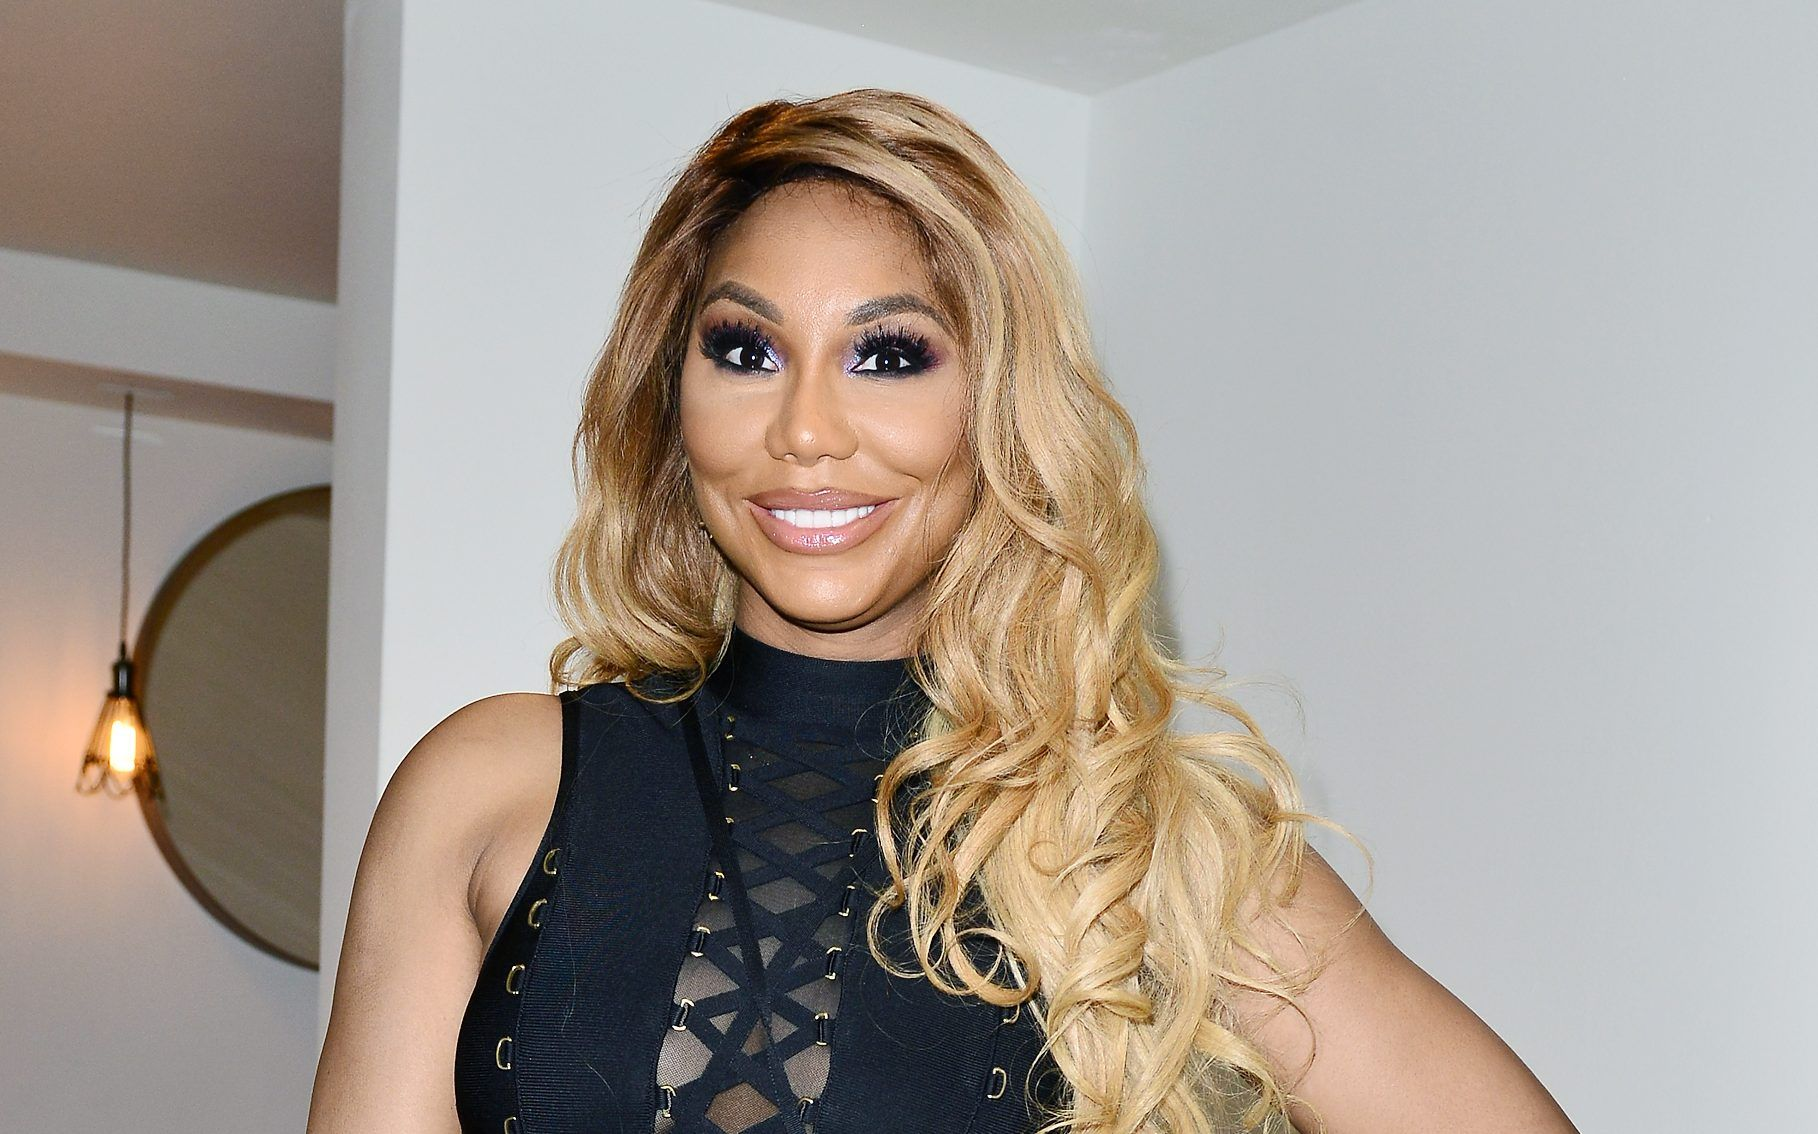 tamar-braxton-opens-up-about-her-scary-suicide-attempt-in-lengthy-letter